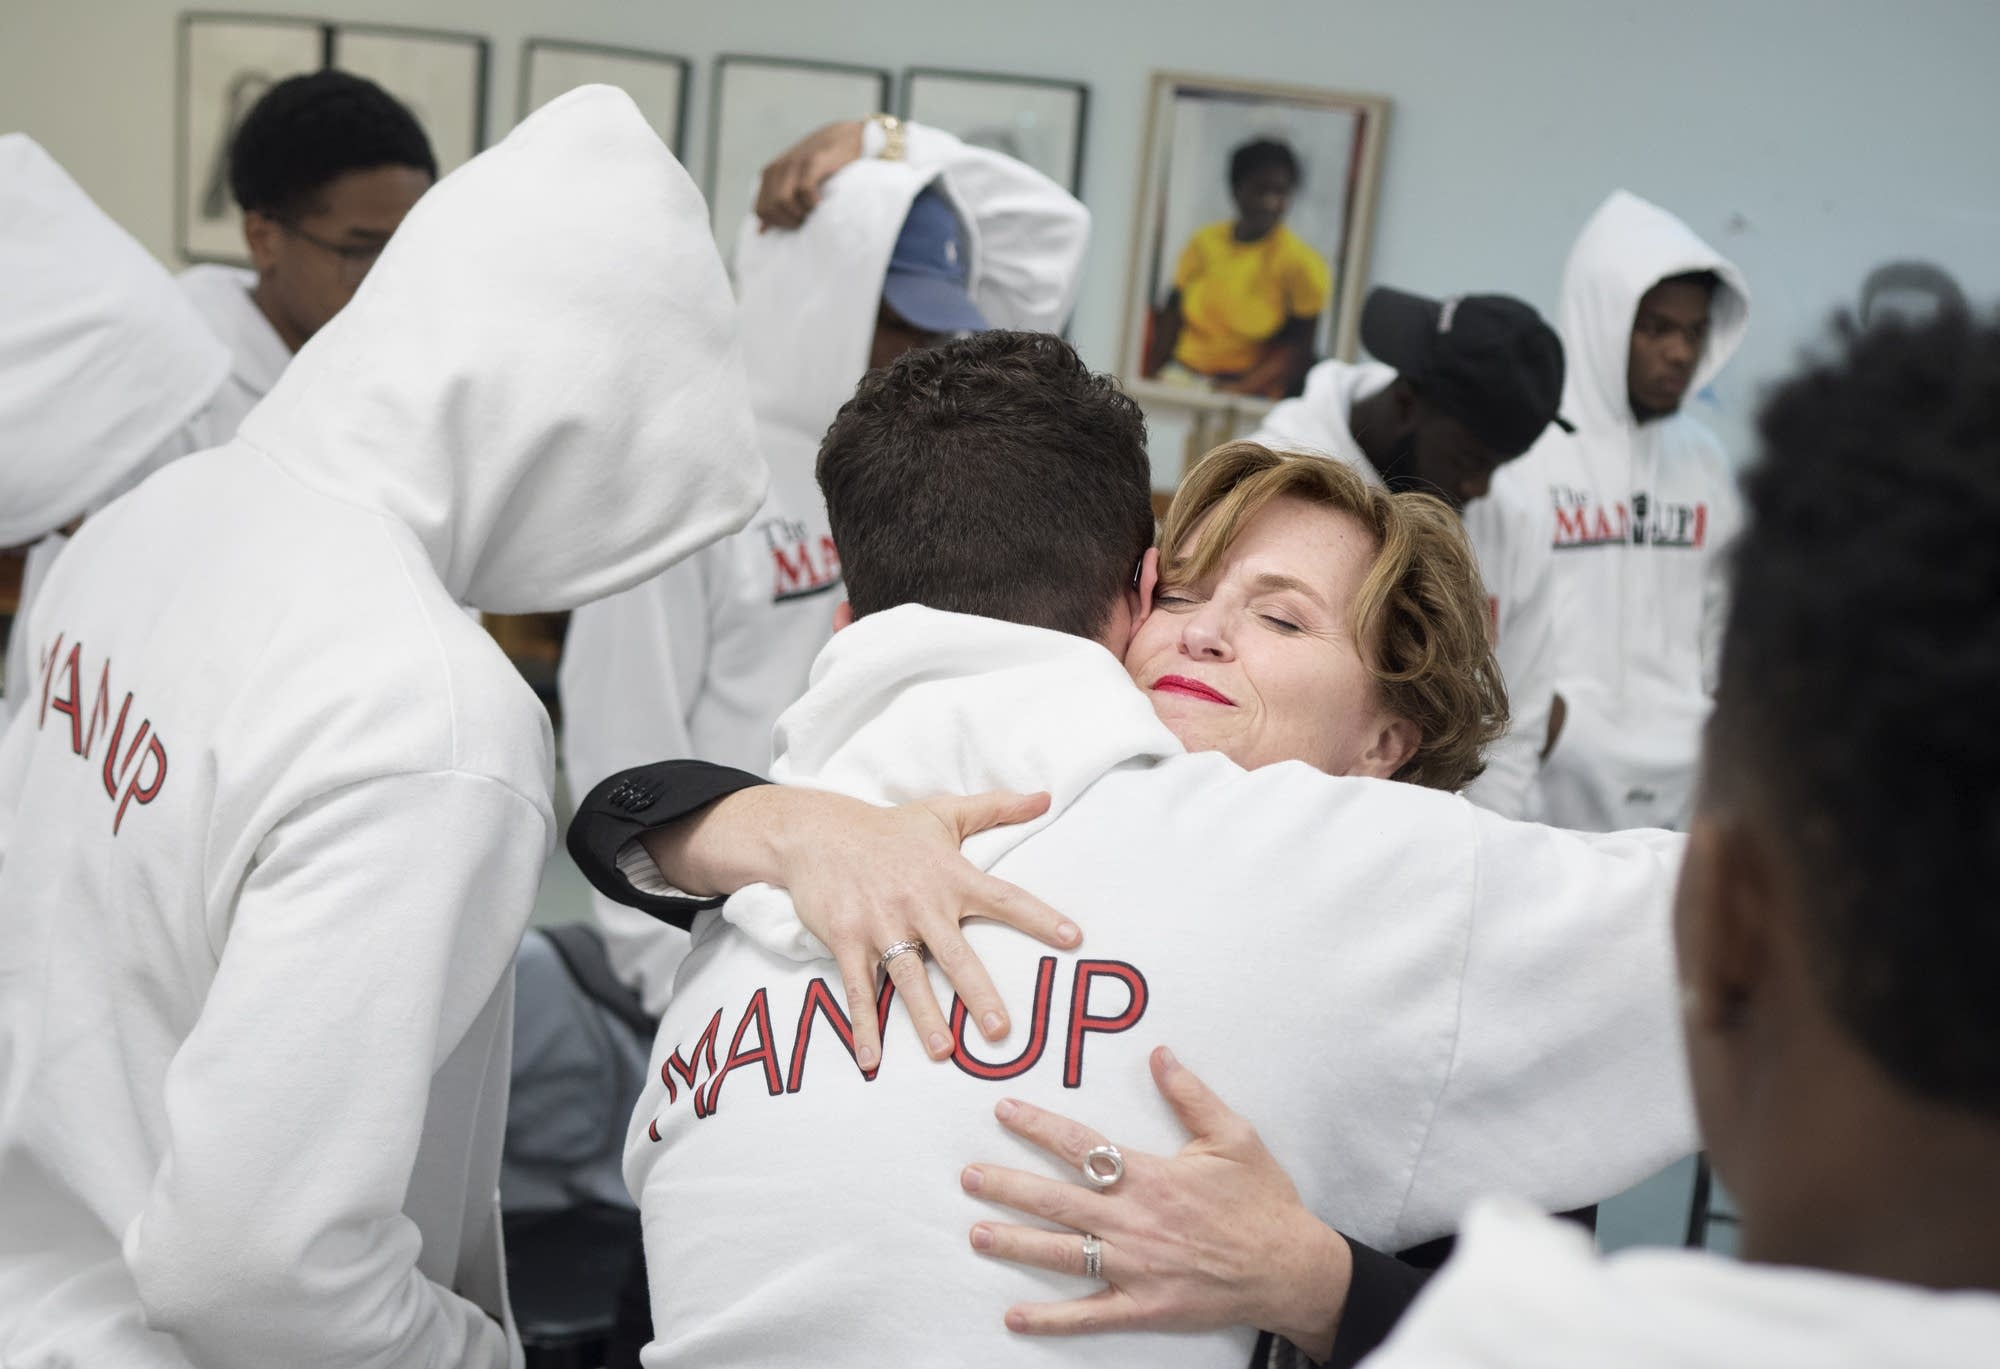 Mayor Betsy Hodges embraces members of The Man Up Club.